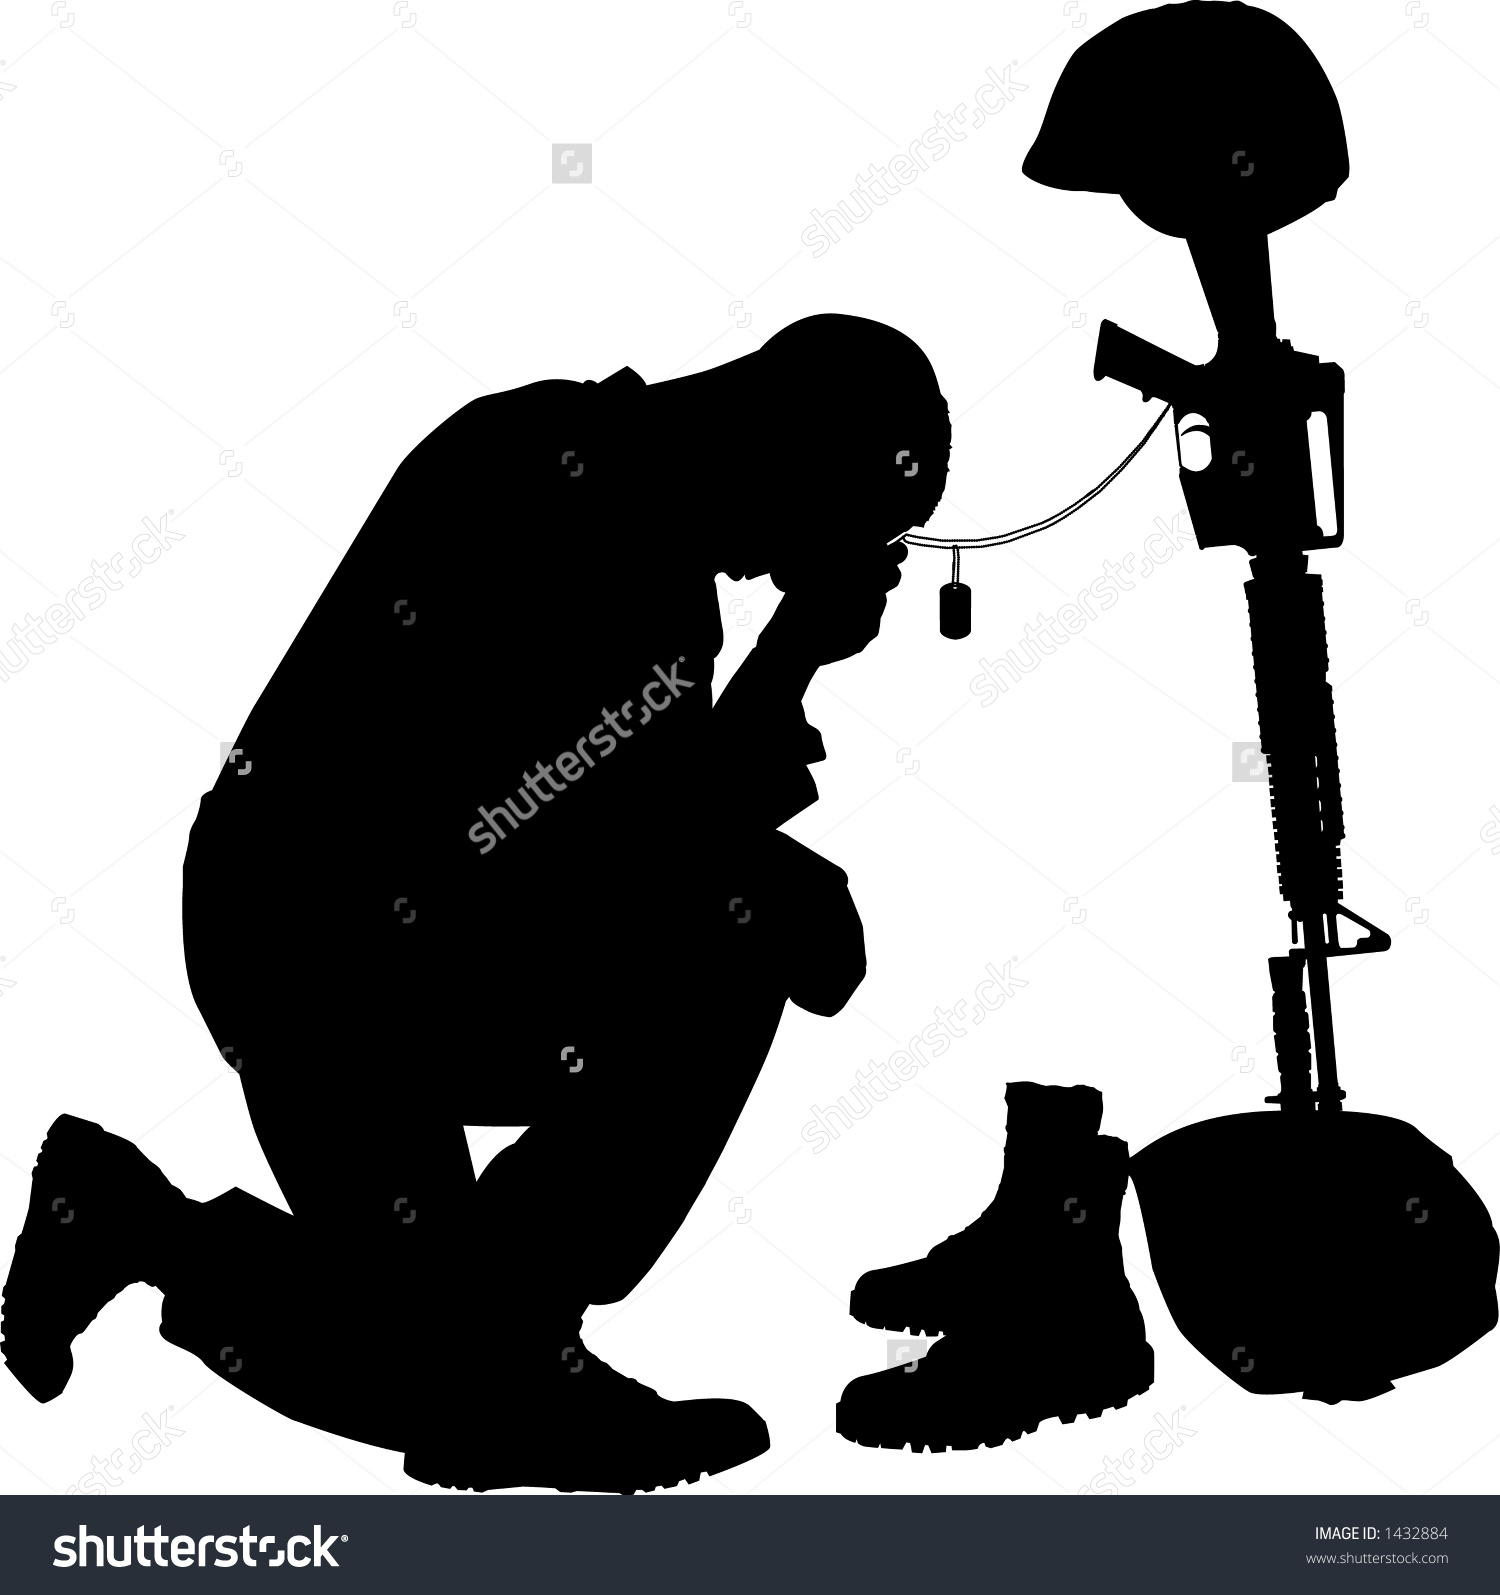 soldier salute silhouette vector at getdrawings com free for rh getdrawings com soldier vector image soldier vector image